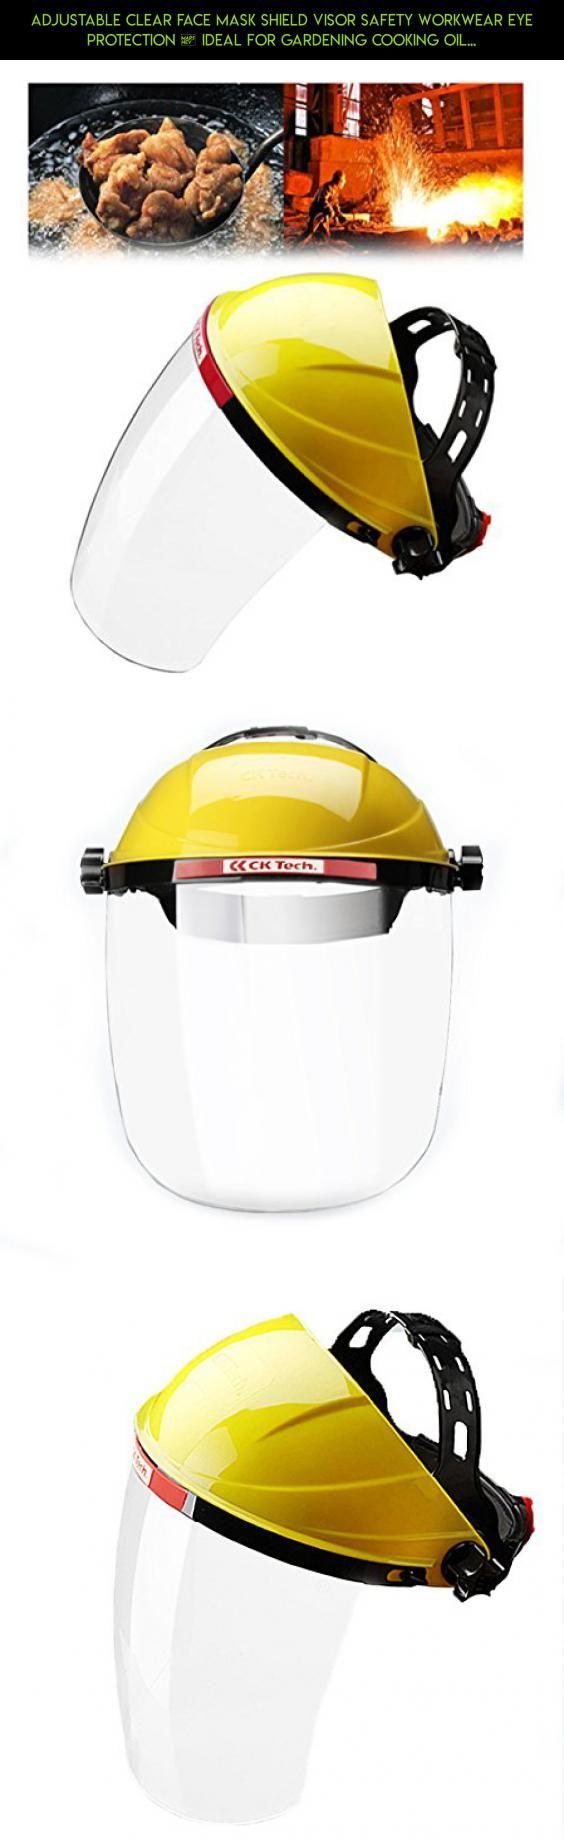 Adjustable Clear Face Mask Shield Visor Safety Workwear Eye Protection – Ideal For Gardening Cooking Oil Splashing #drone #racing #kit #camera #plans #gardening #shopping #parts #fpv #technology #gadgets #tech #products #mask